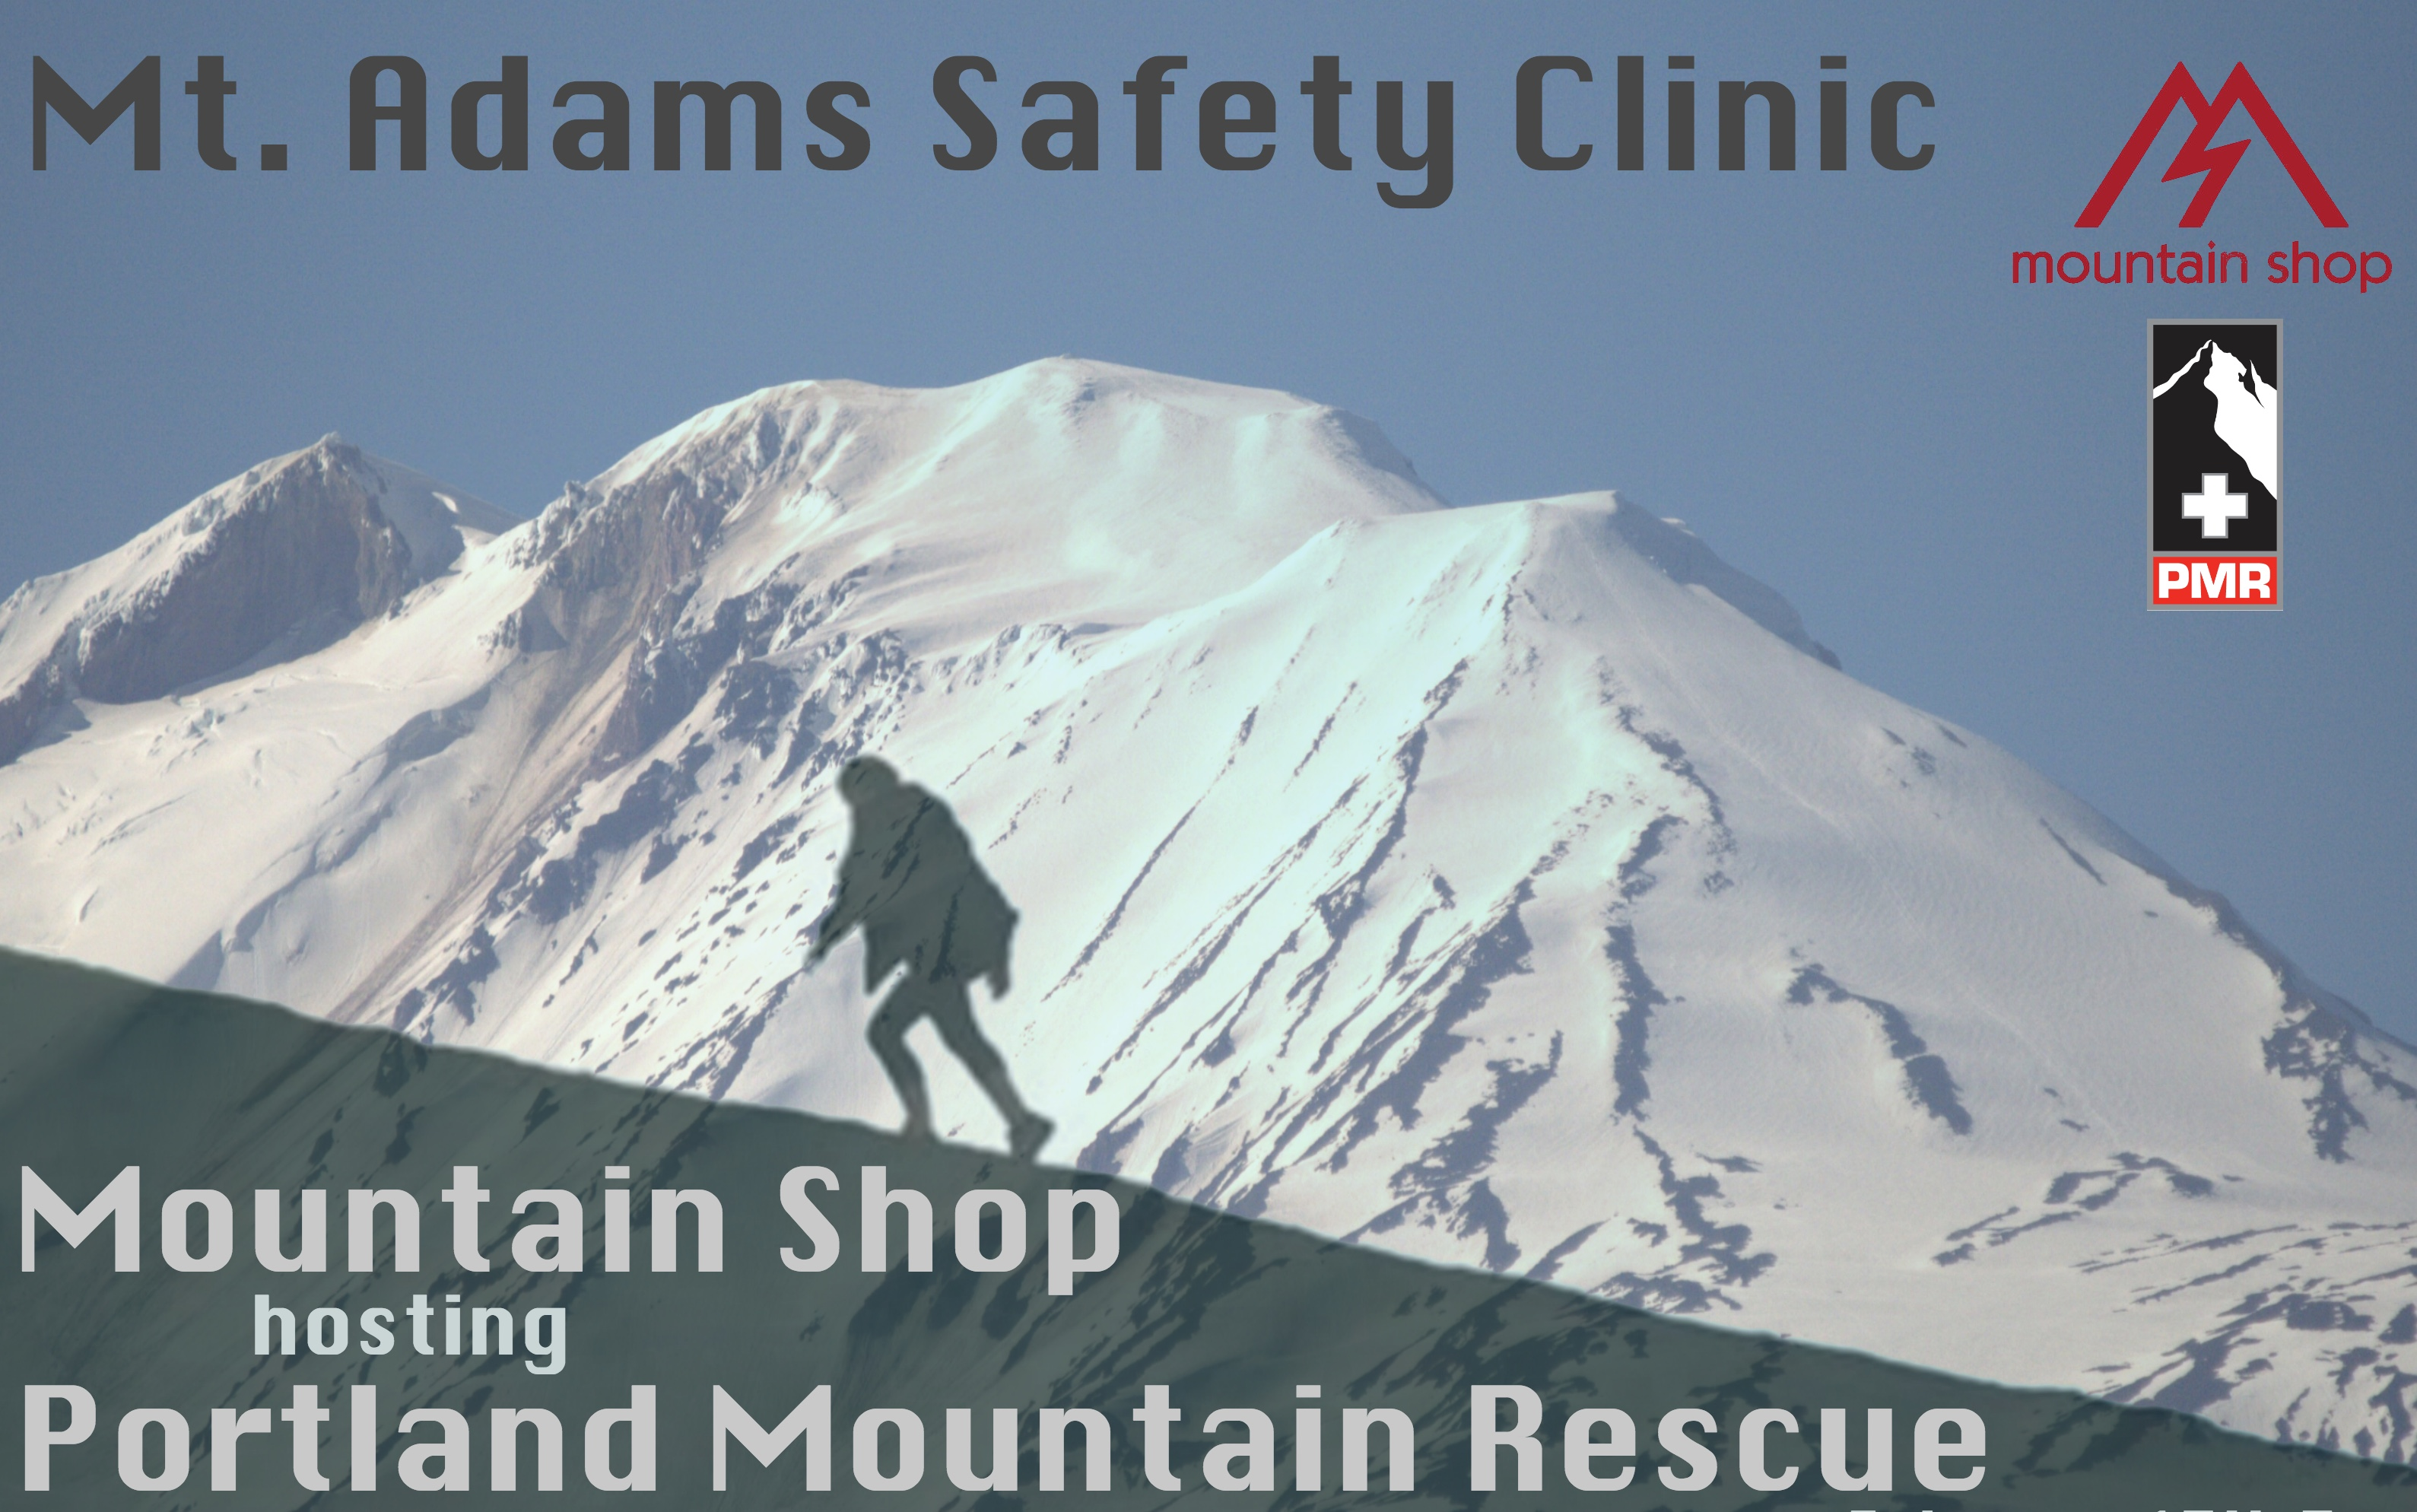 Portland Mountain Rescue: Mt. Adams Safety Clinic